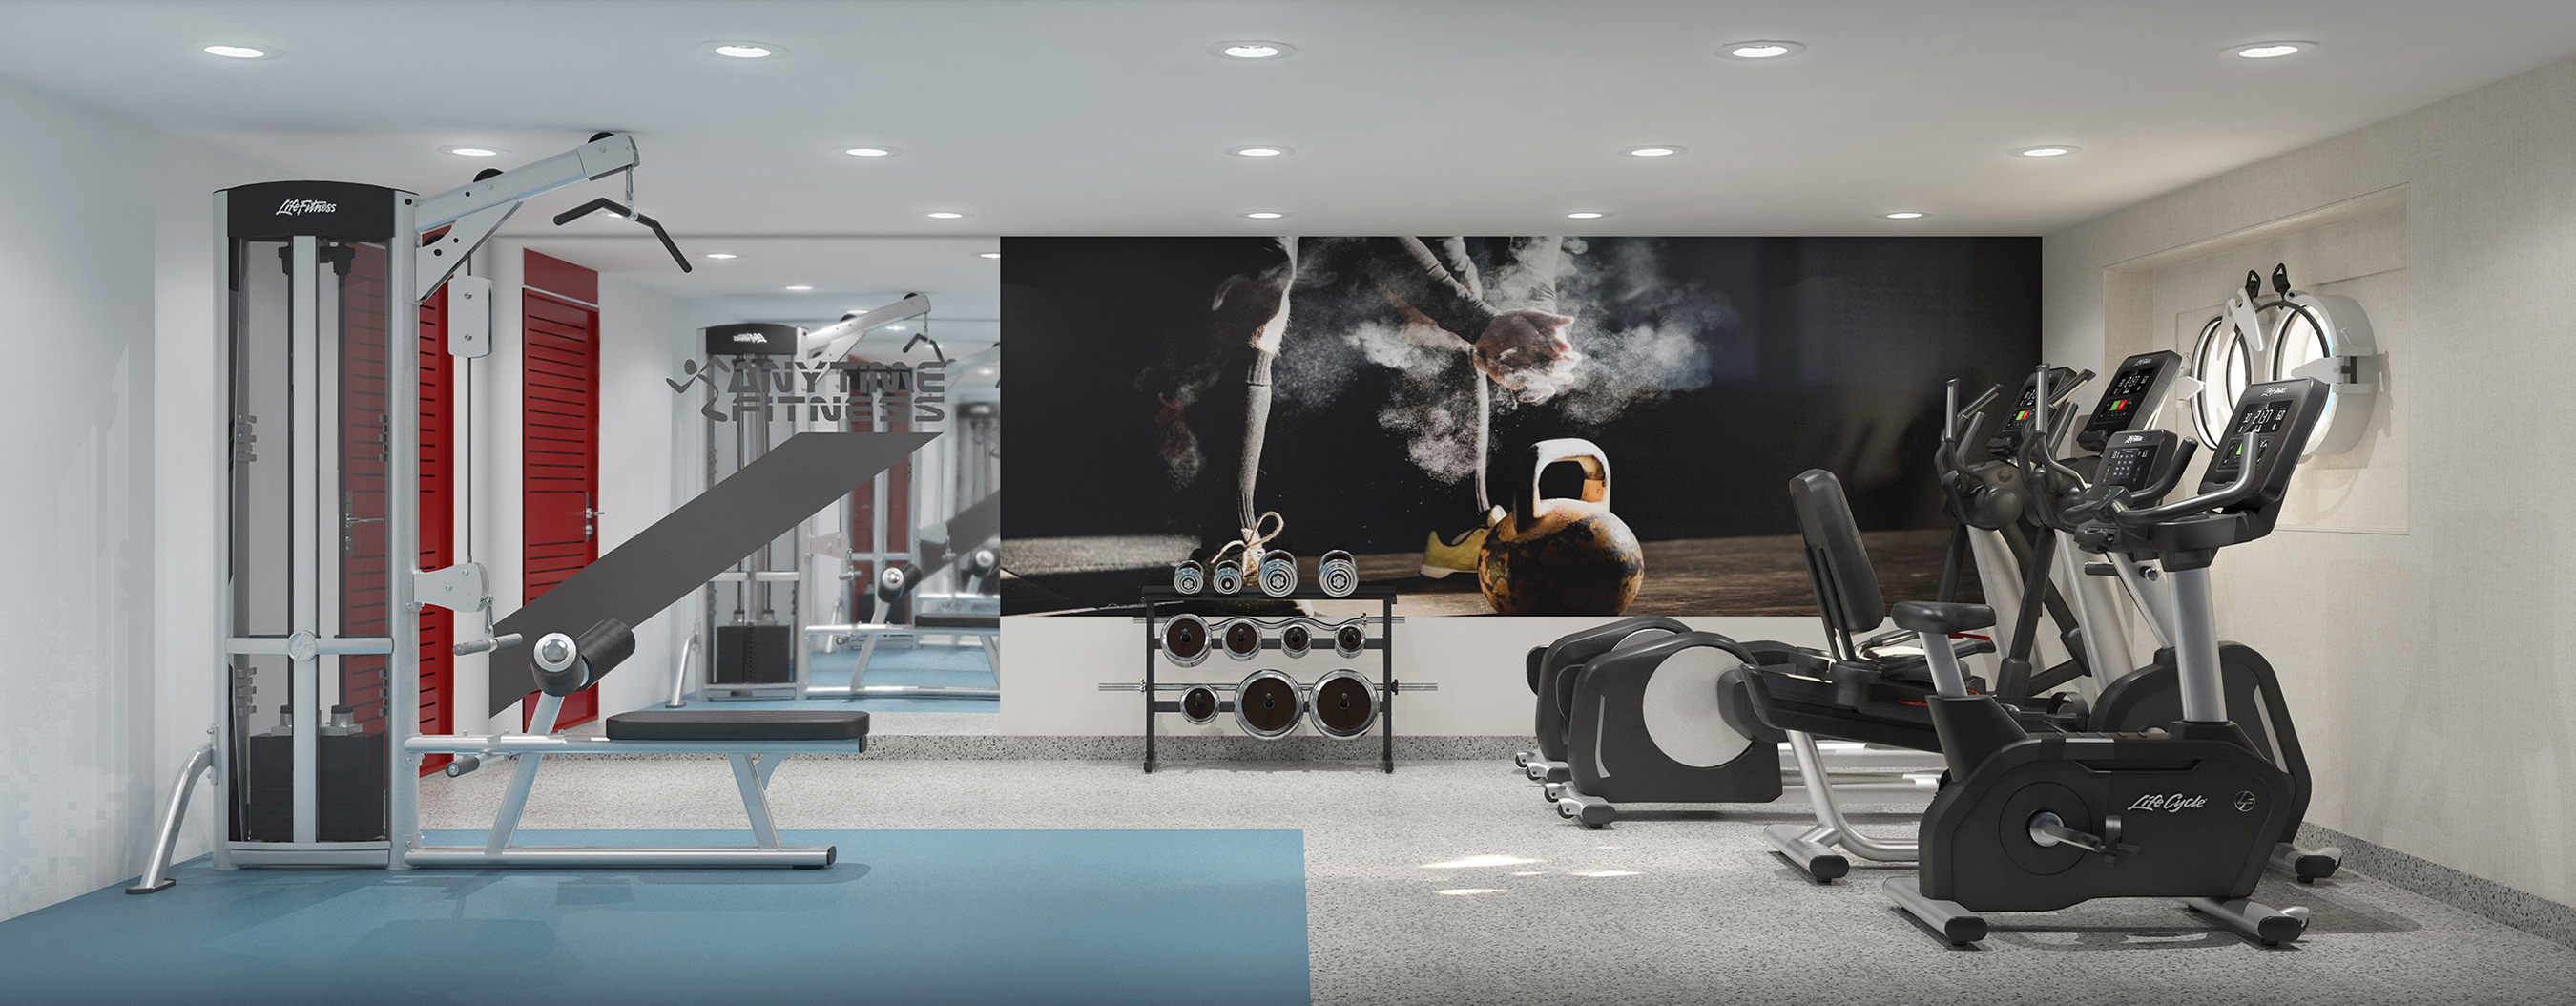 Life Fitness will provide all the exercise equipment for the Anytime Fitness gym onboard the Magellan Explorer: state-of-the-art cardio and resistance machines, and free weights.